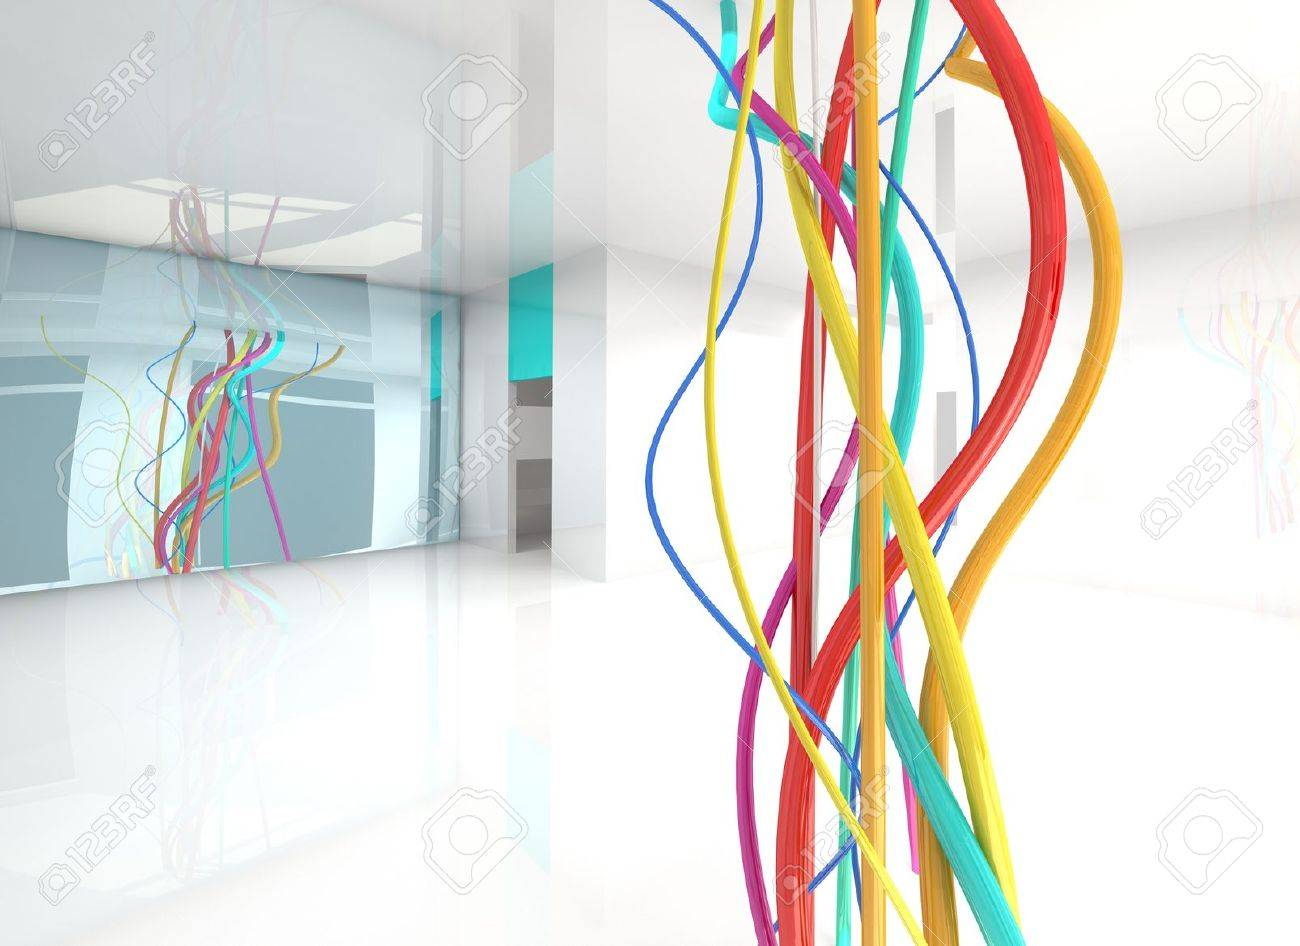 Color Wires In Abstract Interior Stock Photo, Picture And Royalty ...